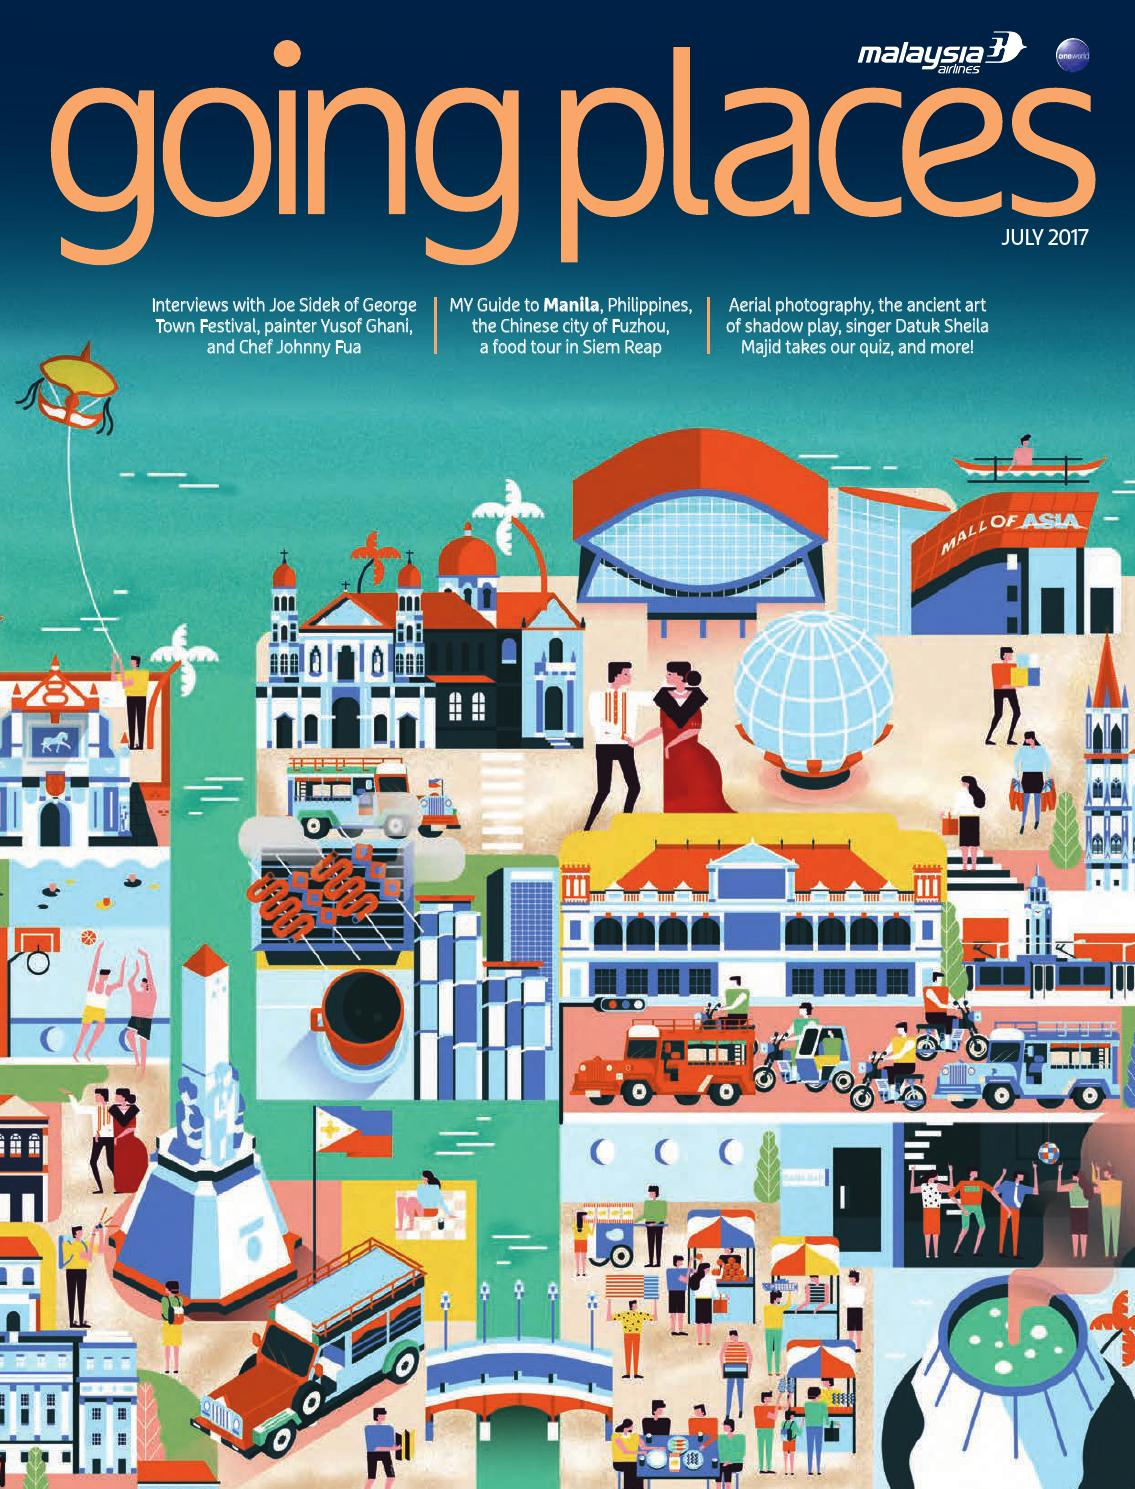 43f8b344919 Going Places July 2017 by Spafax Malaysia - issuu